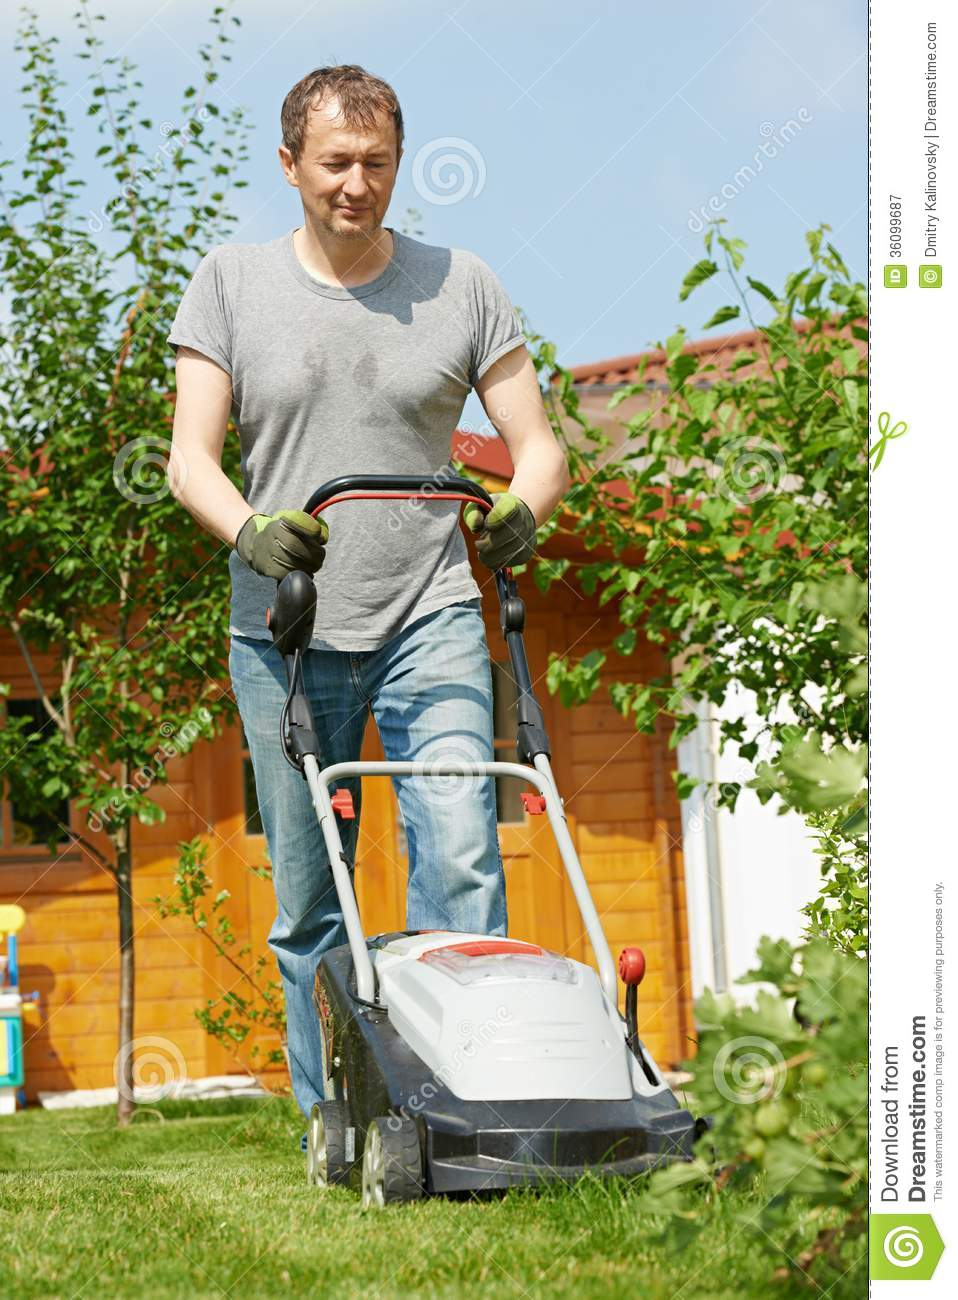 Man Mowing Lawn In Backyard Royalty Free Stock Photography